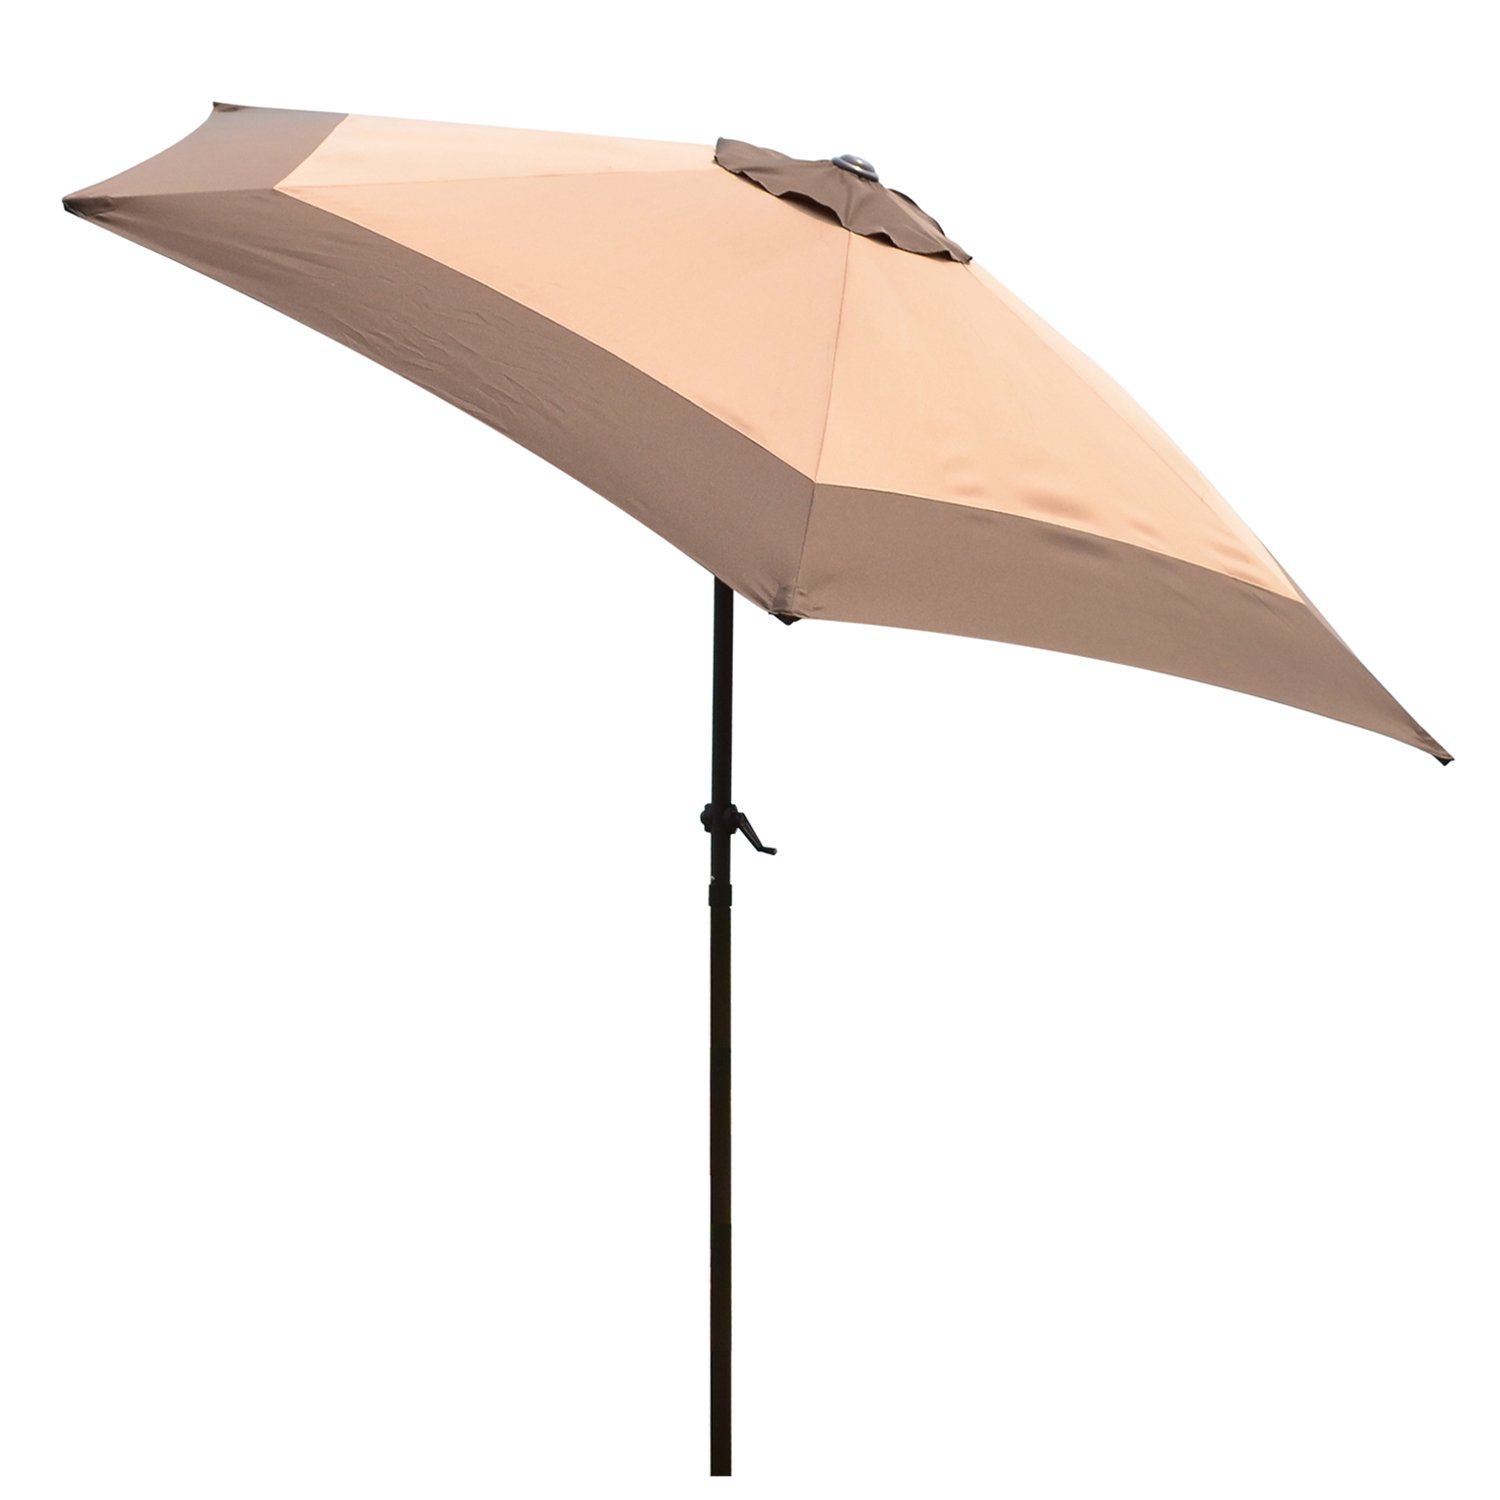 Supernova Patio Umbrella 9ft Aluminum Pipe Polyester Fabric Outdoor Market Yard Beach Coffee Khaki Mix Coffee Khaki Mix